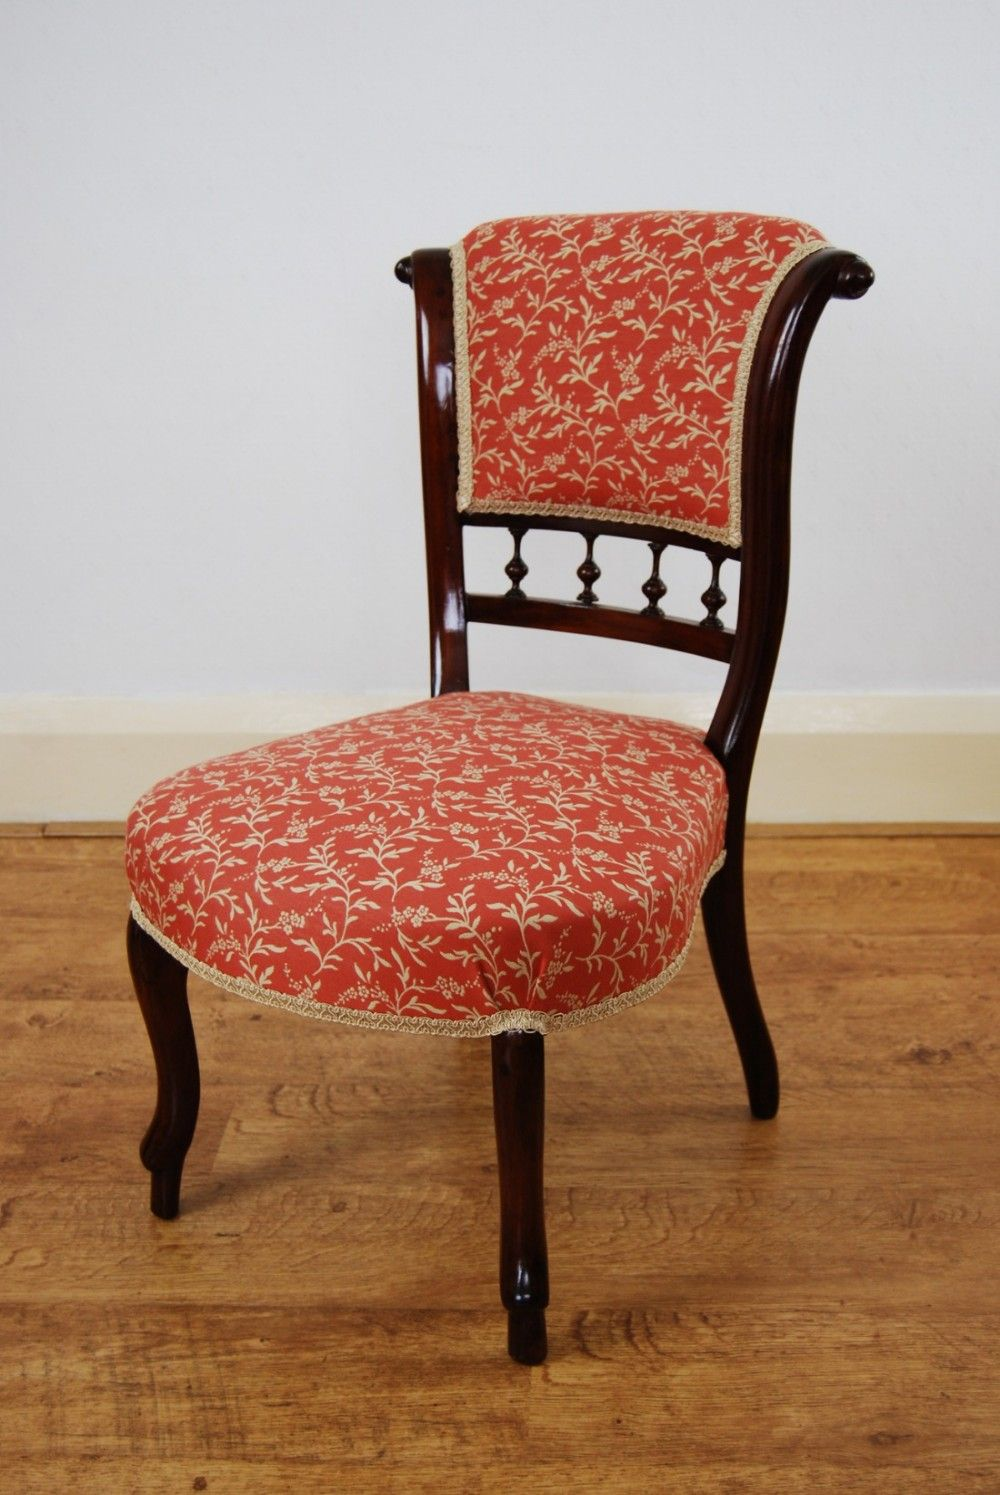 Lovely Victorian Occasional Chair Of Small Proportions, In Linwood Fabric   Sold  By The Sitting Place